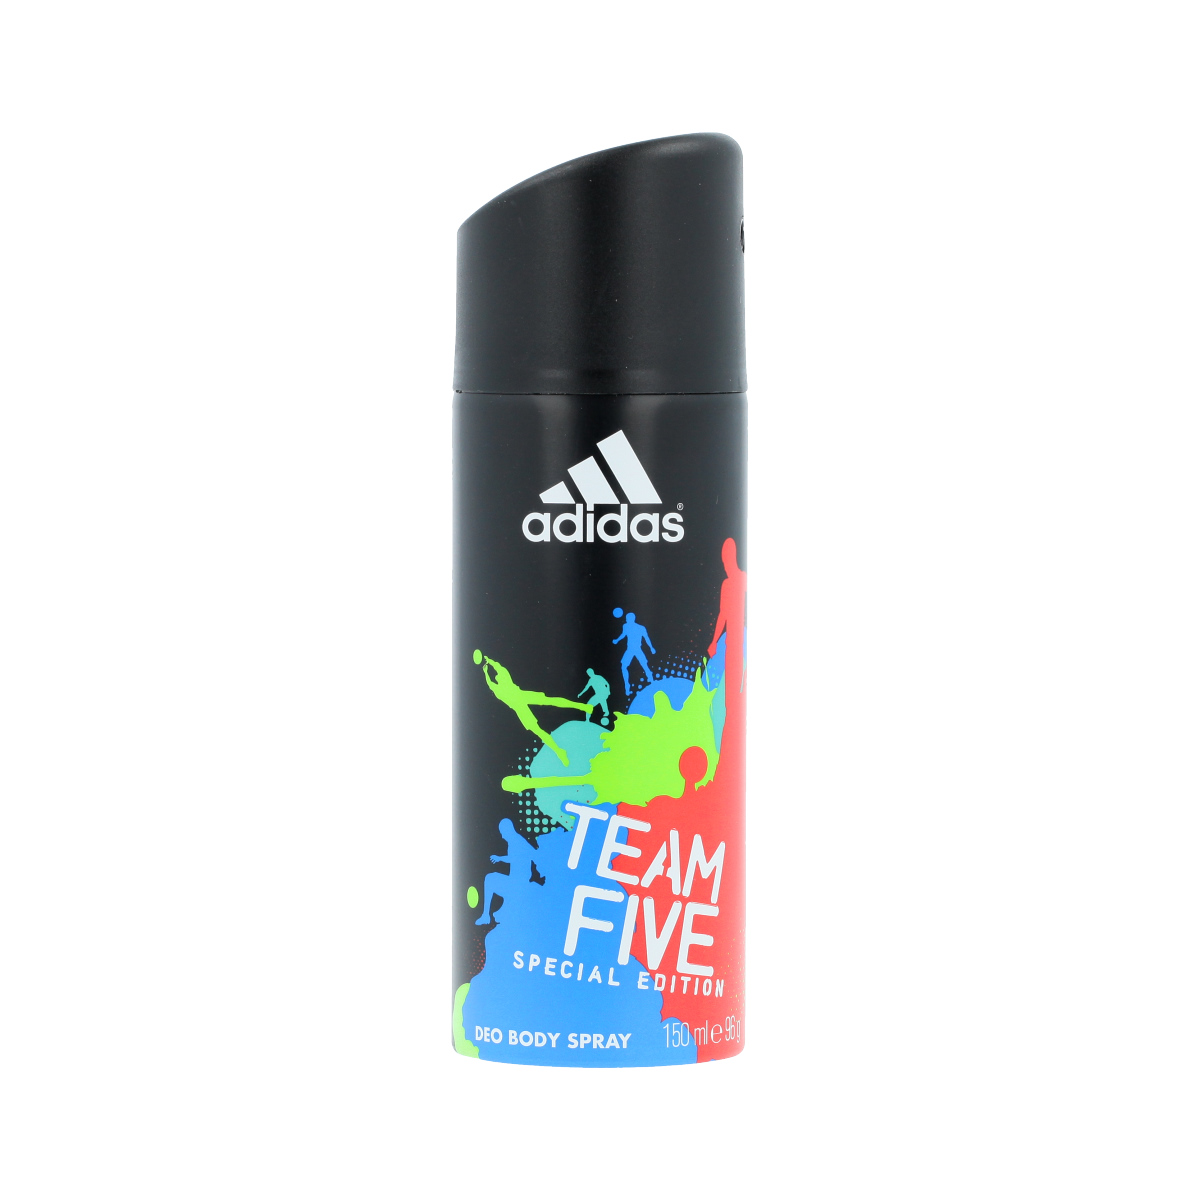 Adidas Team Five Deodorant im Spray 150 ml (man) 72901